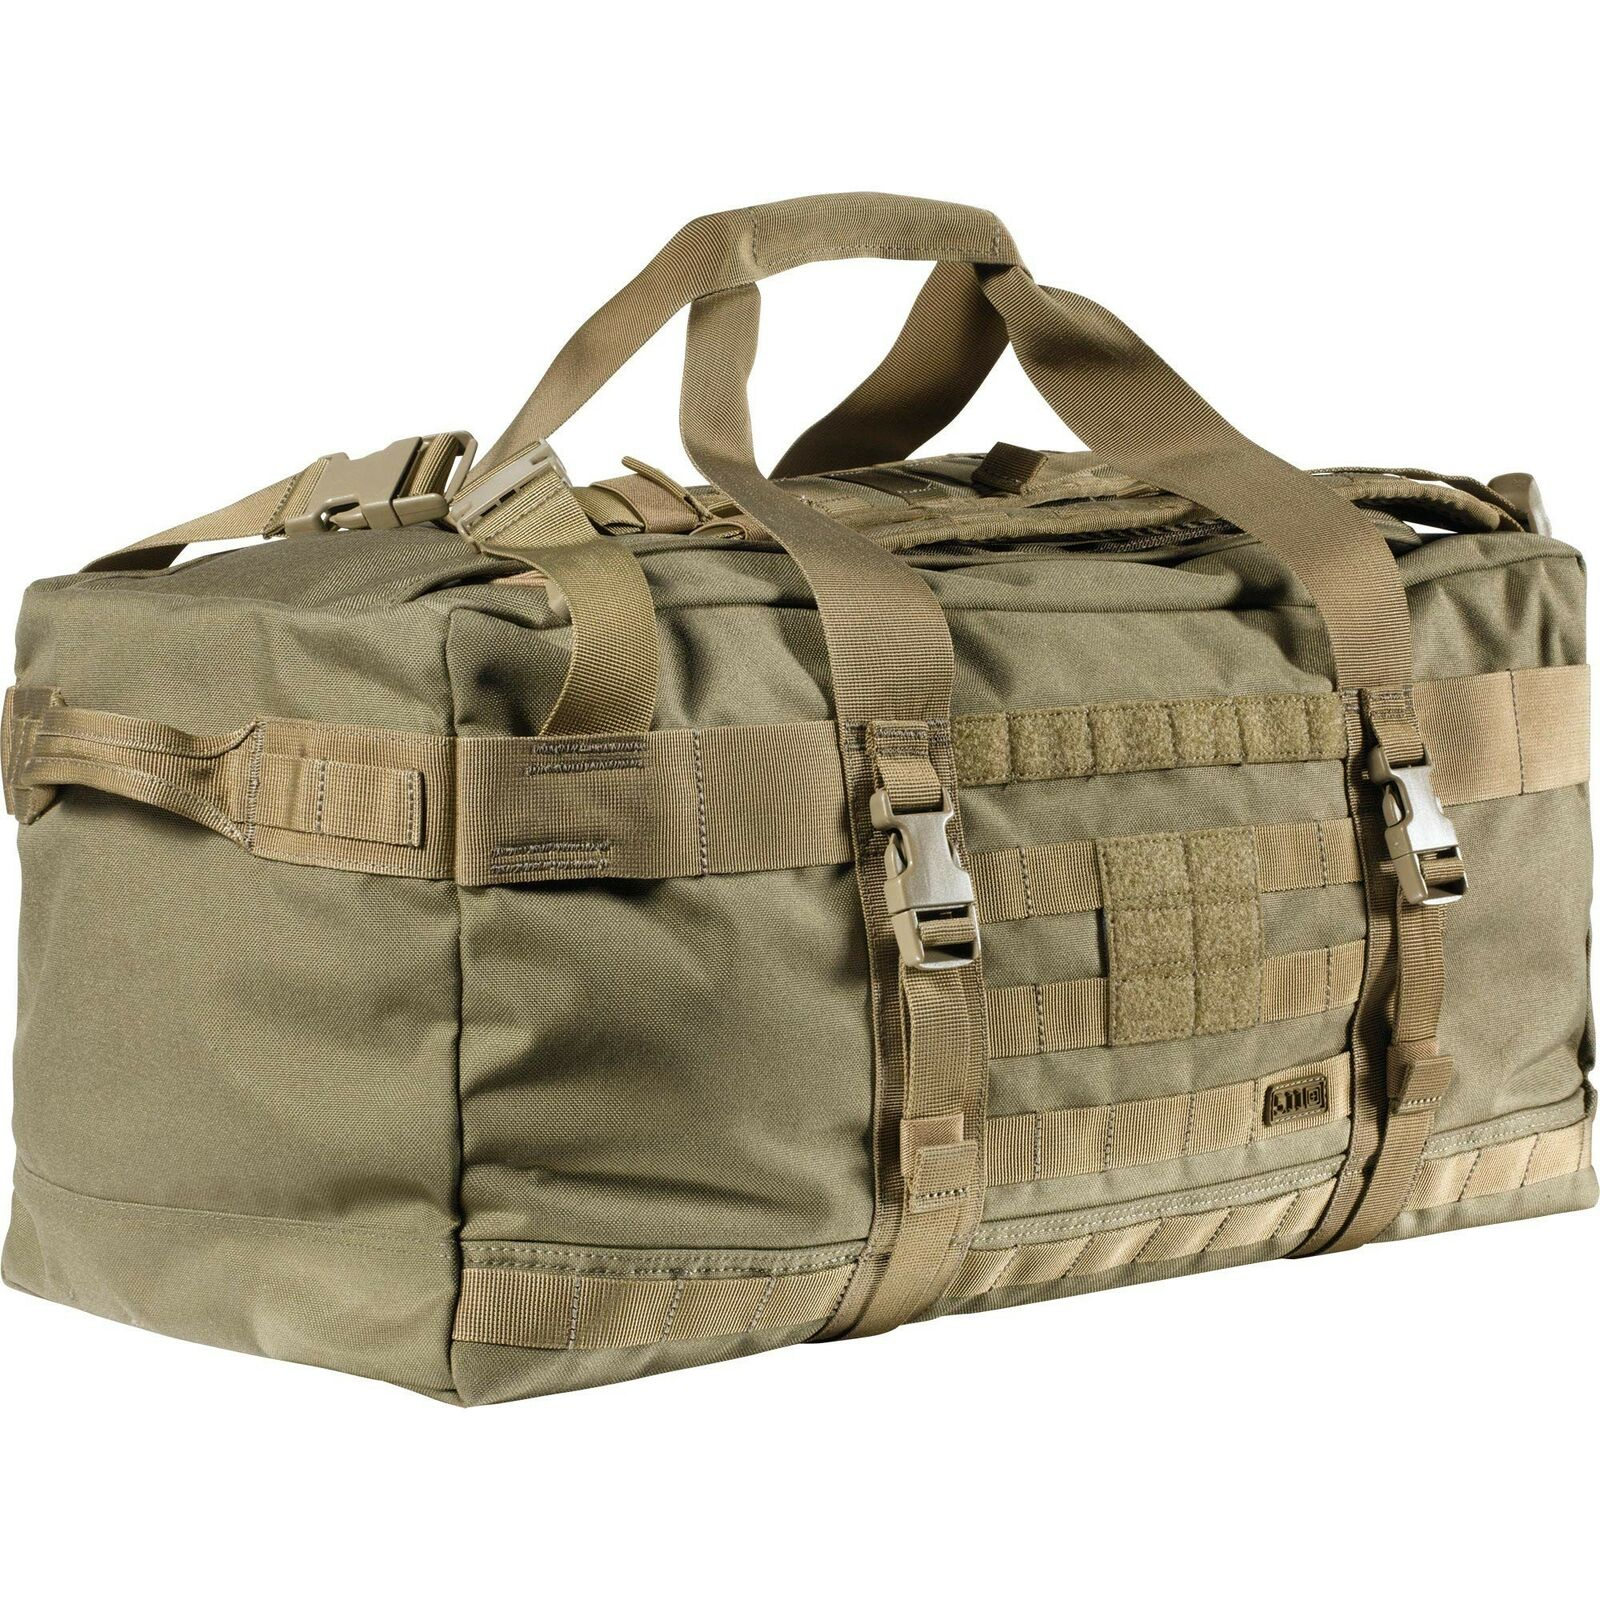 Travel and Sports Duffel Bag Backpack - 5.11 Tactical Rush LBD Lima Molle Tactical Gear